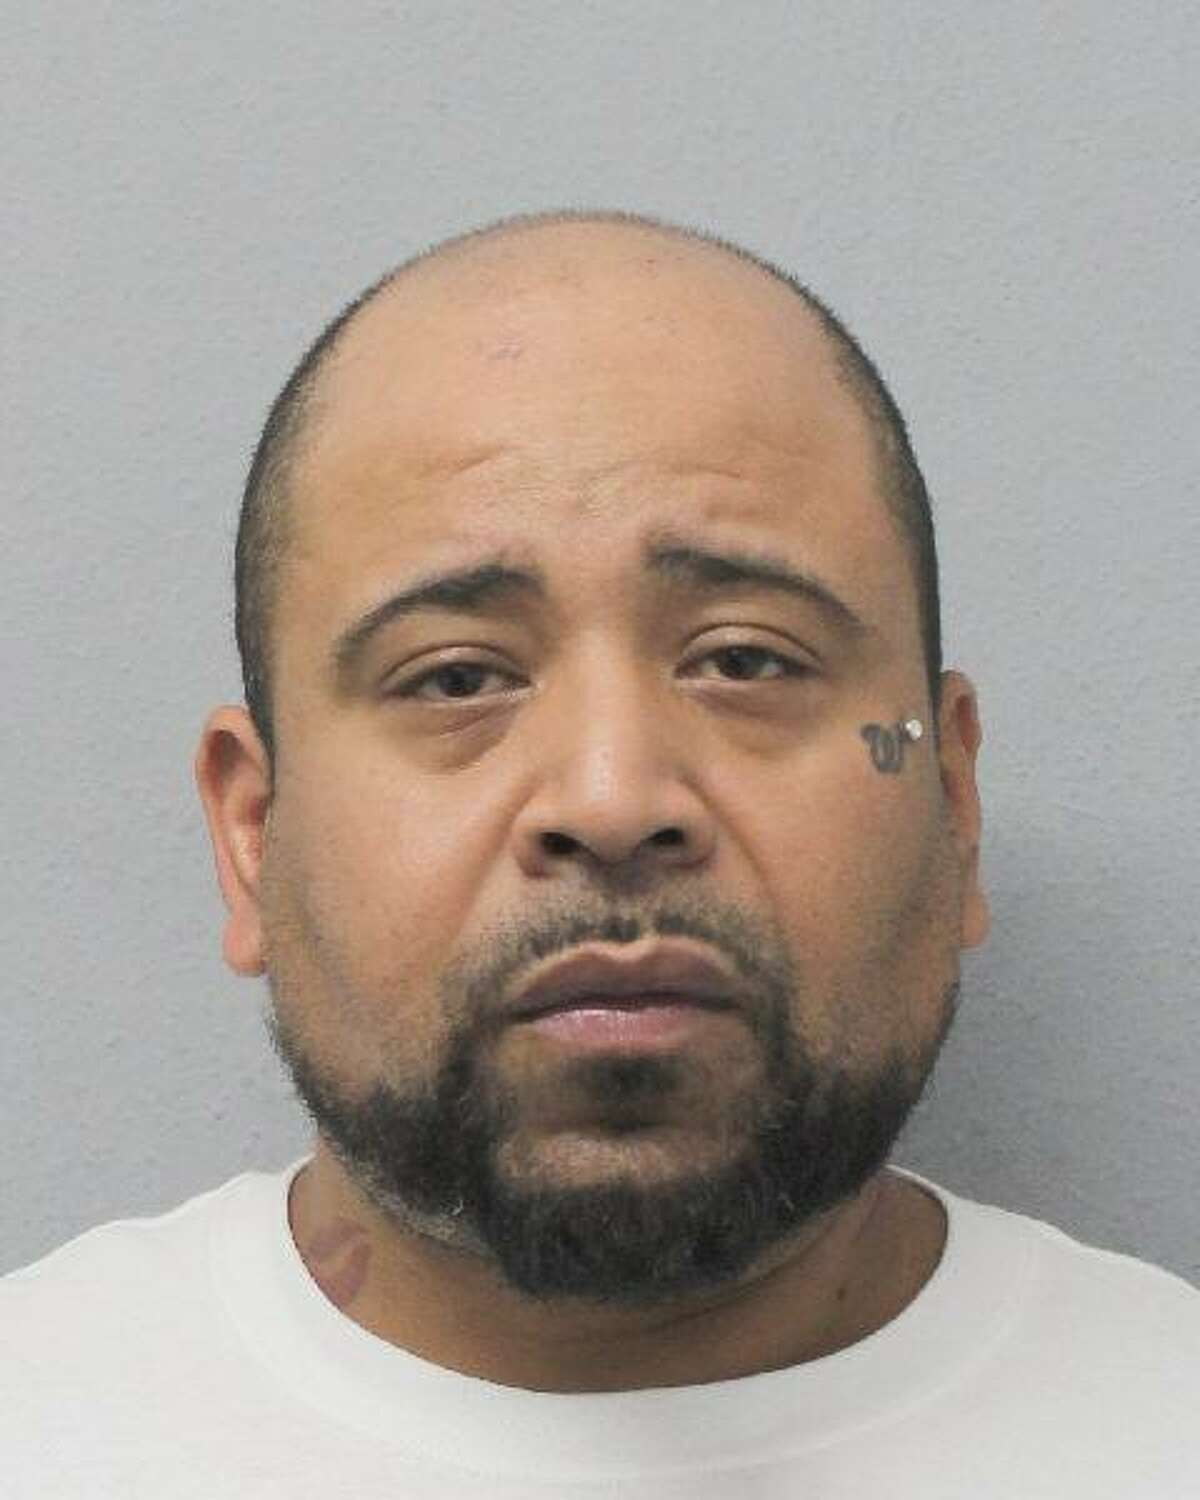 Ernesto Alvarez, 40, is among the first of 19 people in the county facing a charge of fraudulent use or possession of credit or debit card information, the DA's Office said.